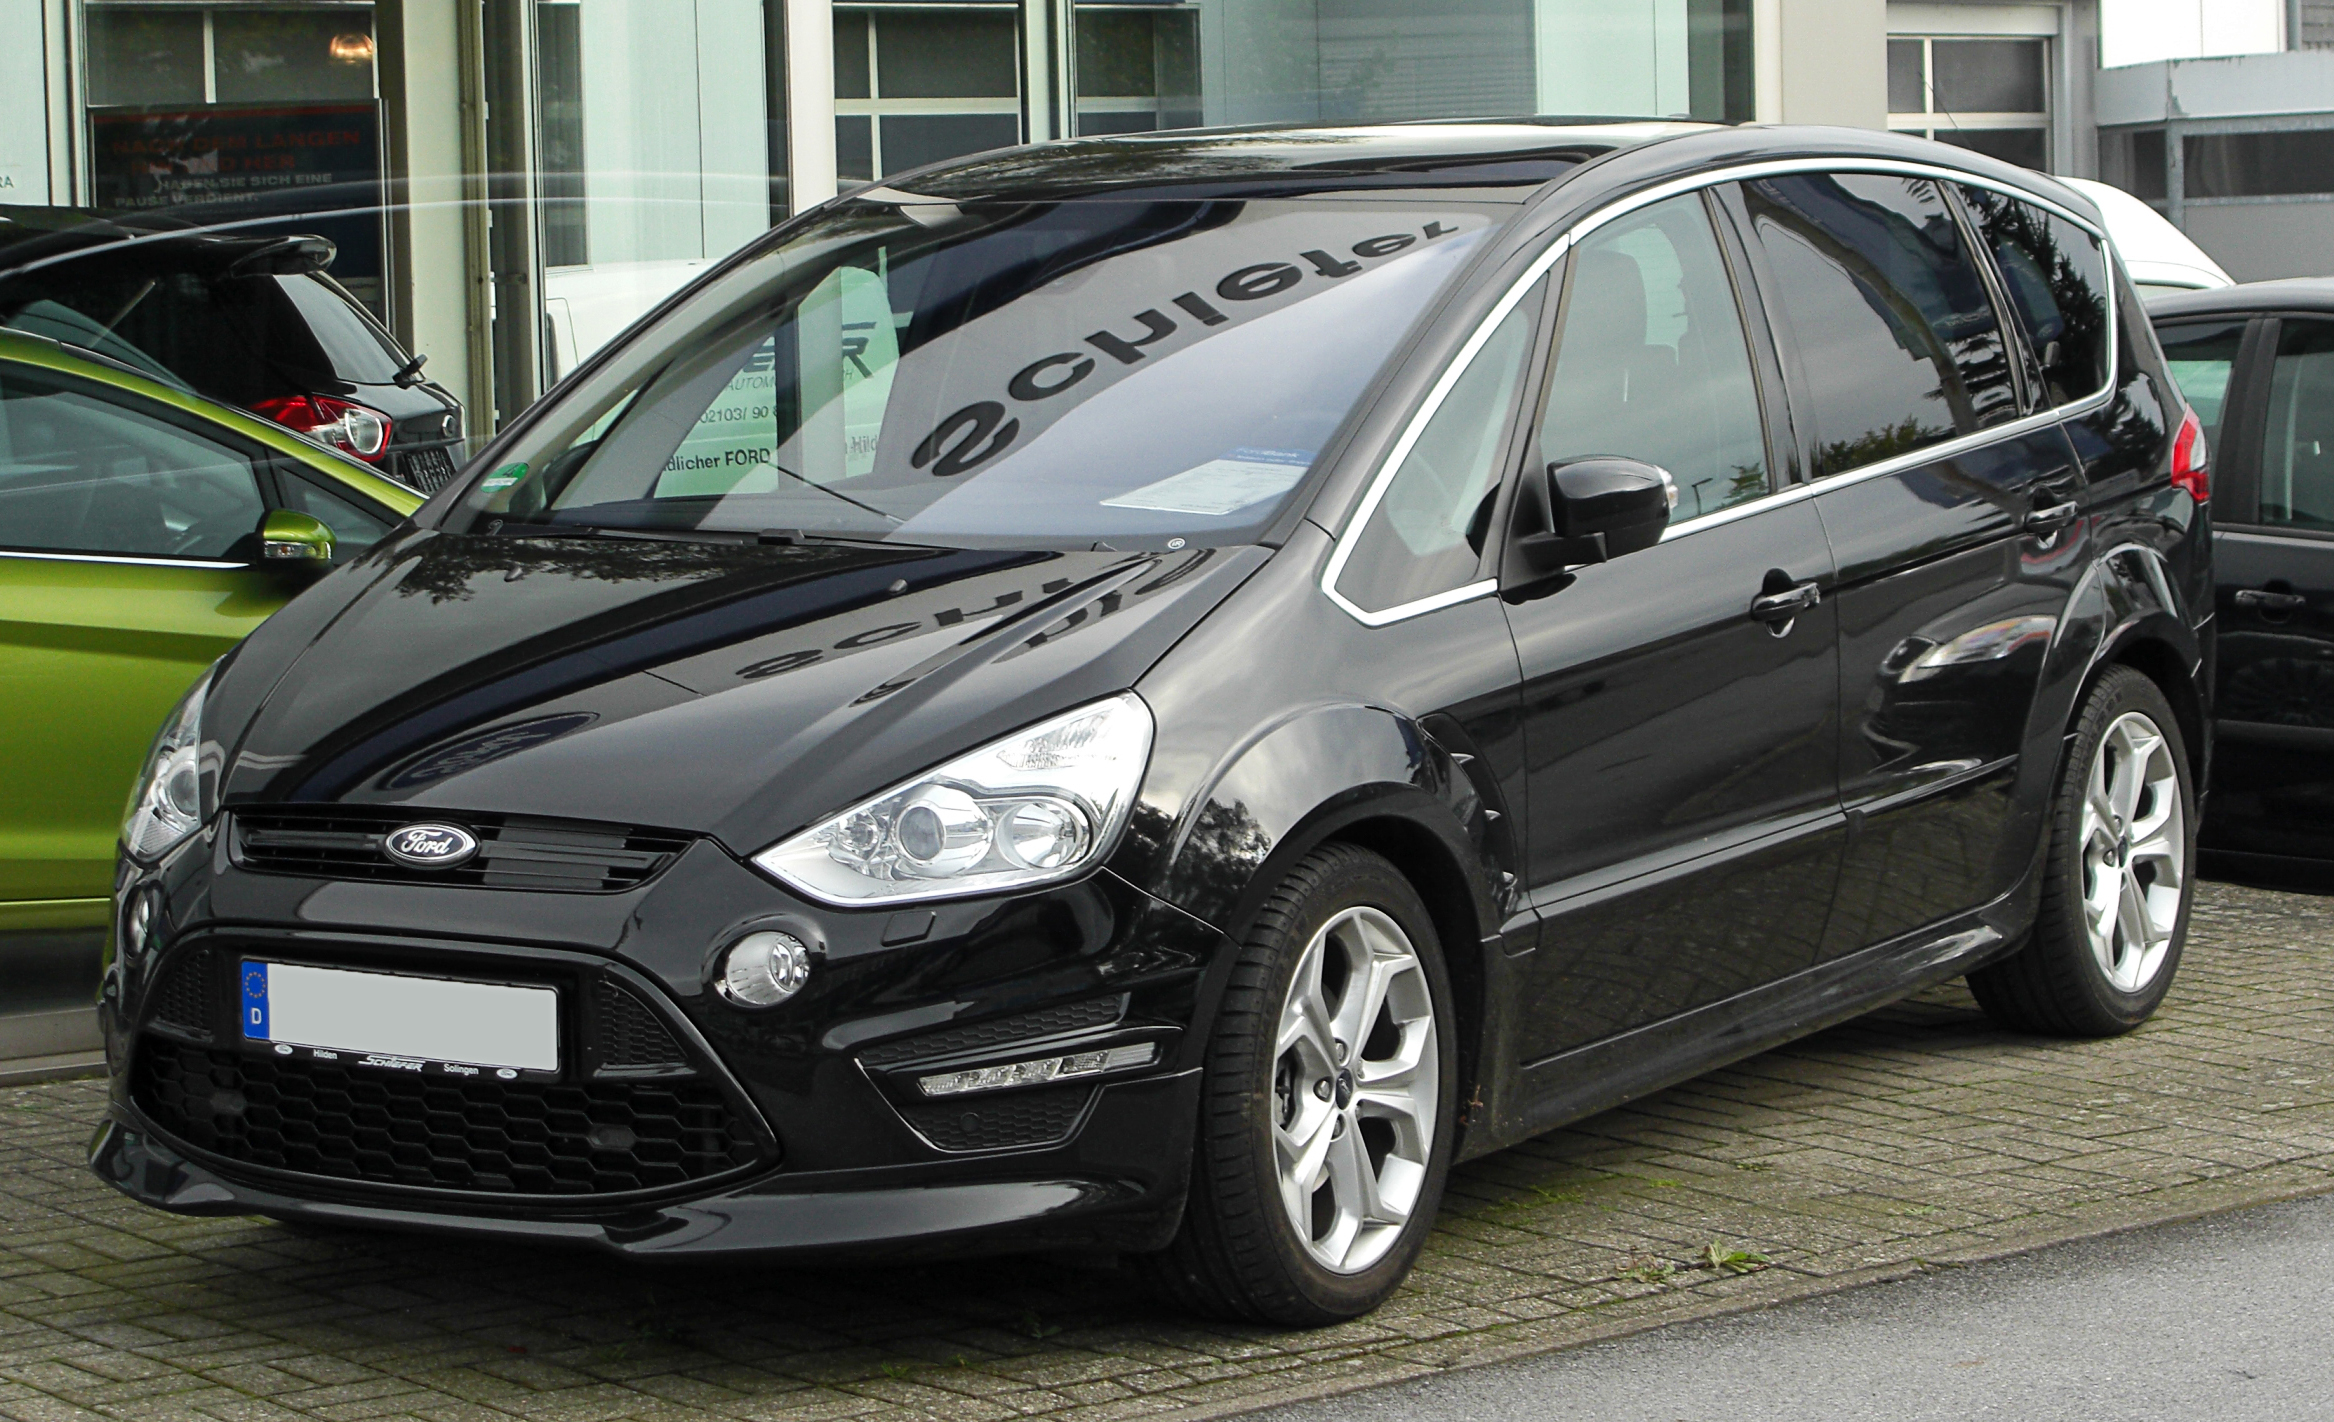 Ford S-Max 2.2 2013 photo - 8